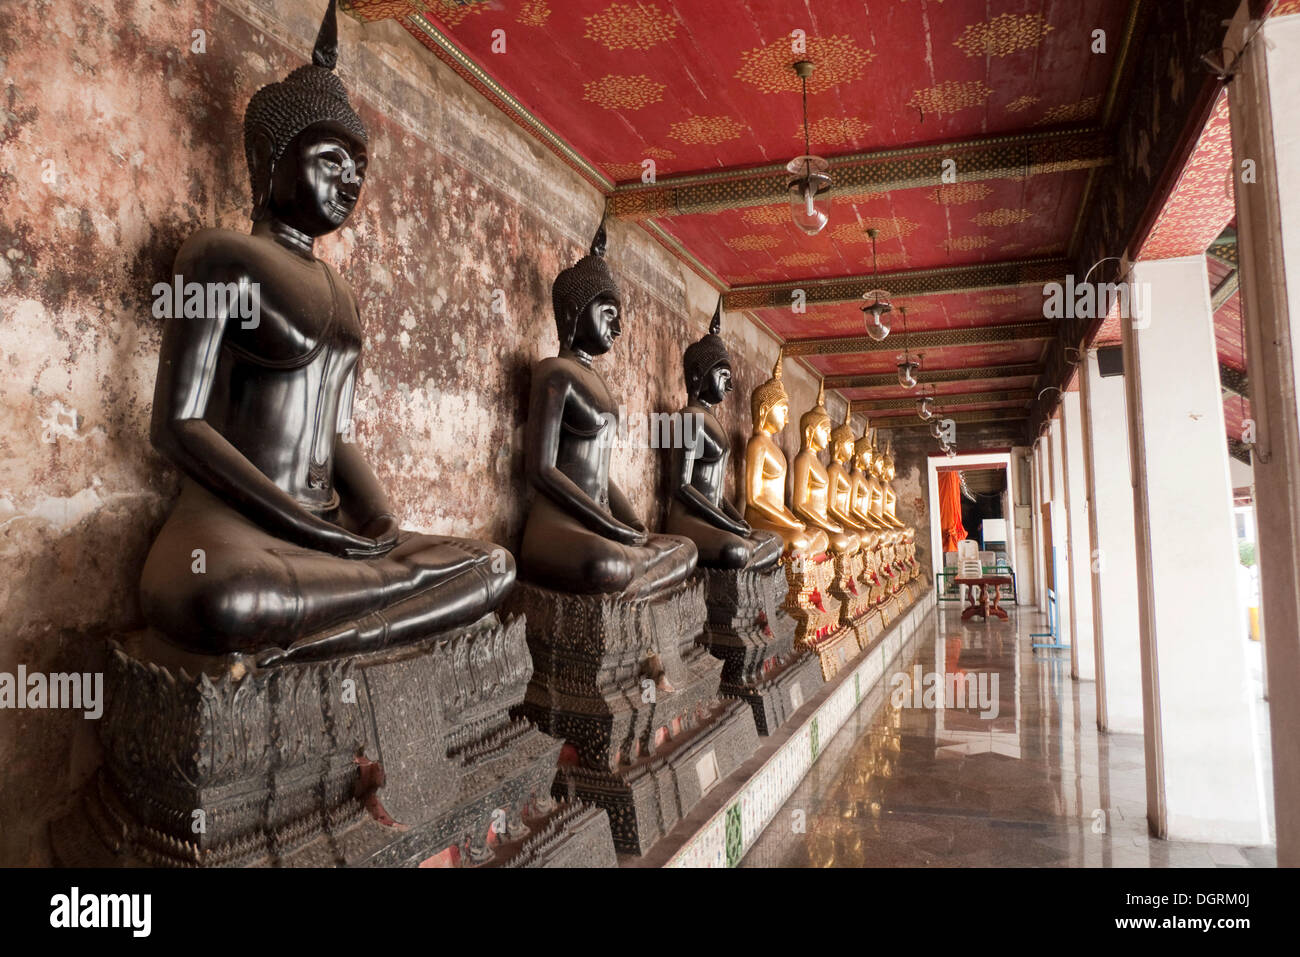 Black Buddha statues, gilded through donations, Buddhist temple, Wat Suthat, Bangkok, Thailand, Southeast Asia, Asia - Stock Image